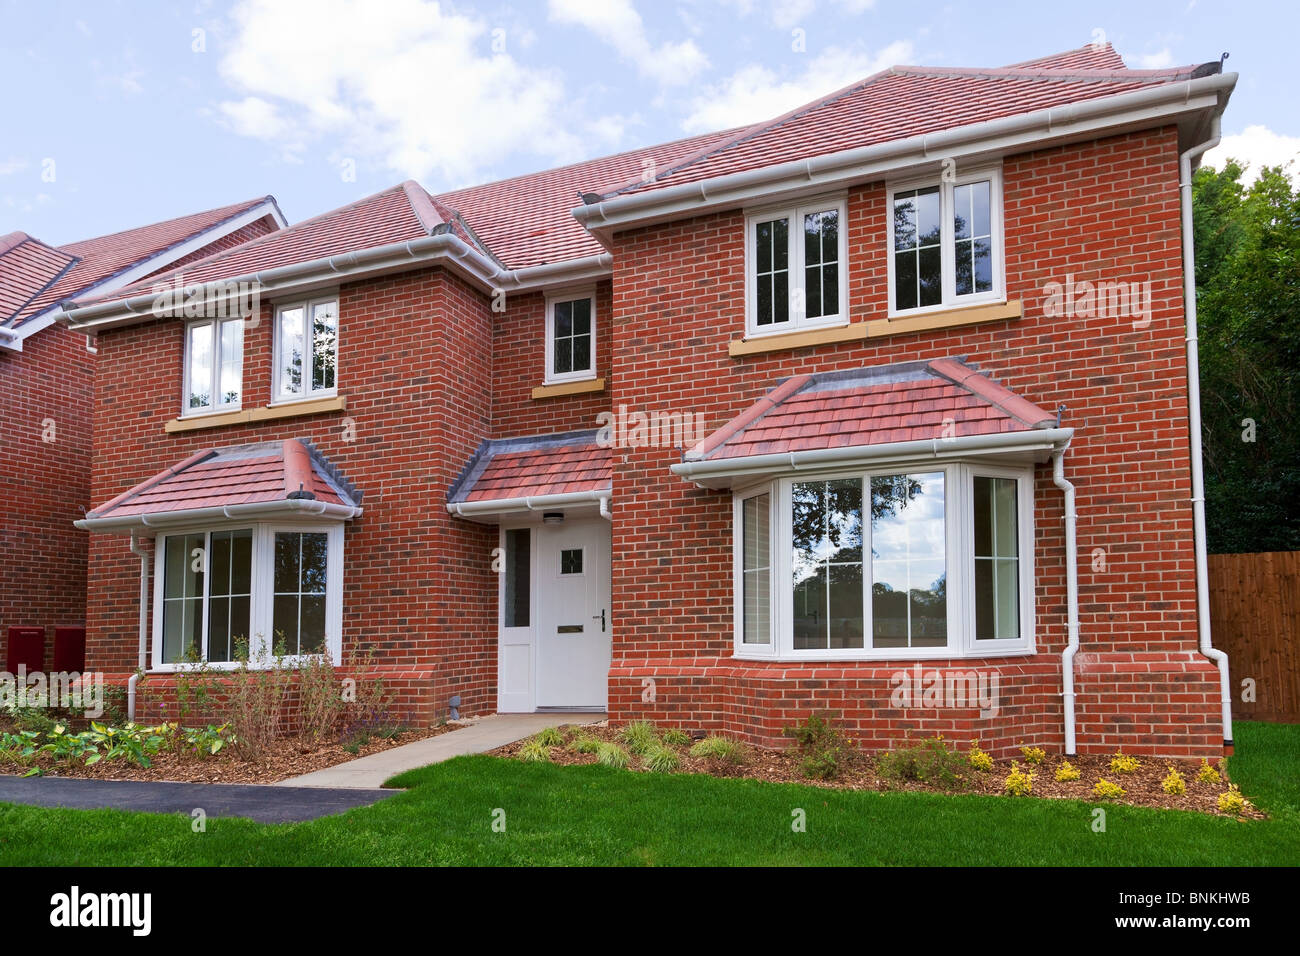 Photo of a brand new unoccupied detached red brick built five bedroom house on a modern housing development. - Stock Image